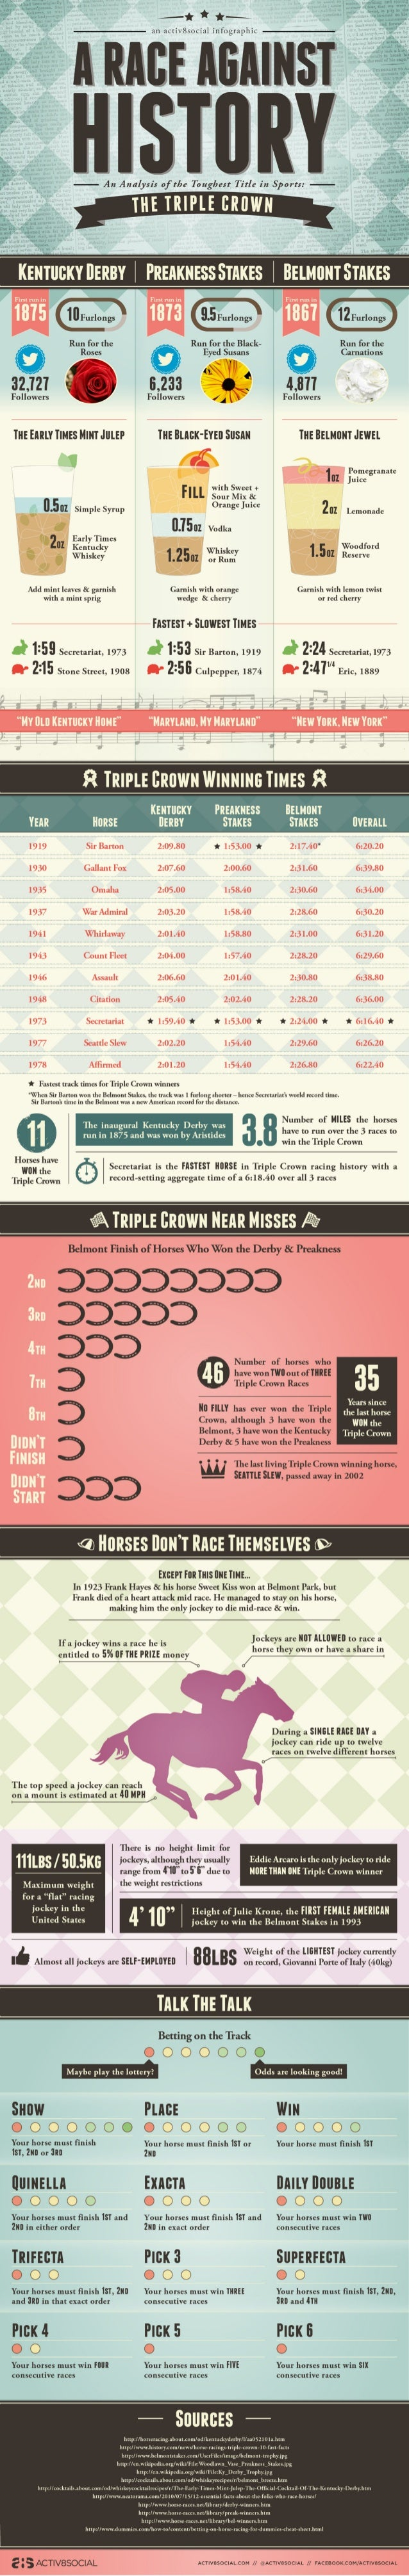 A Race Against History: The Triple Crown [INFOGRAPHIC]